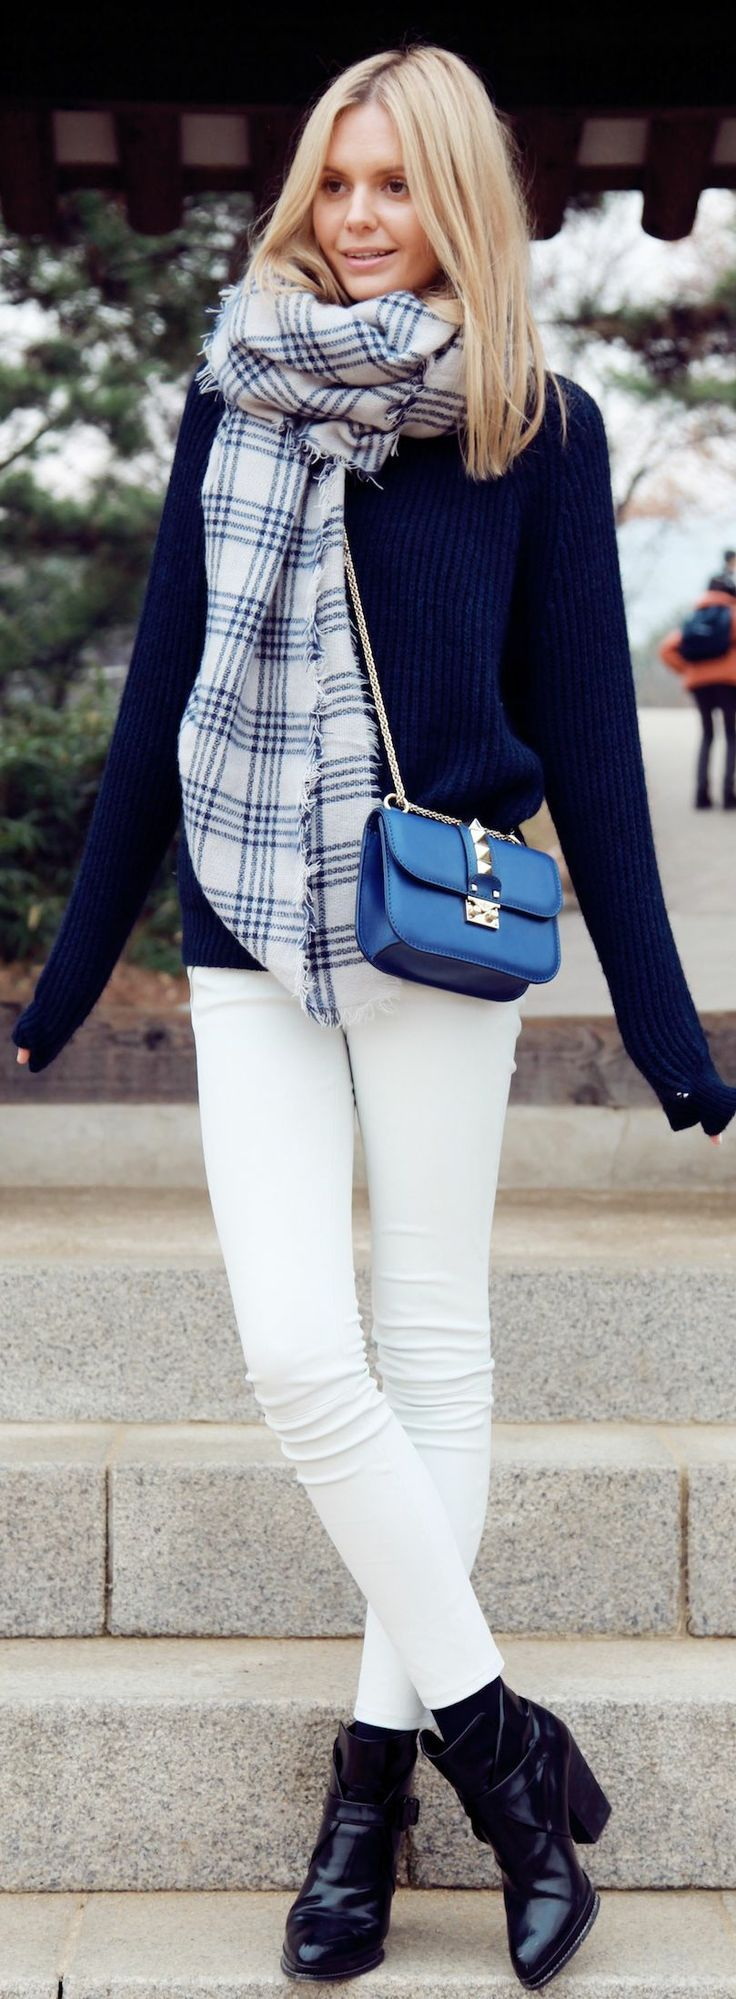 winter autumn white pants leggings boots black shoulder bag blue blond girl scarf sweater pullover style apparel women clothing outfit fashion